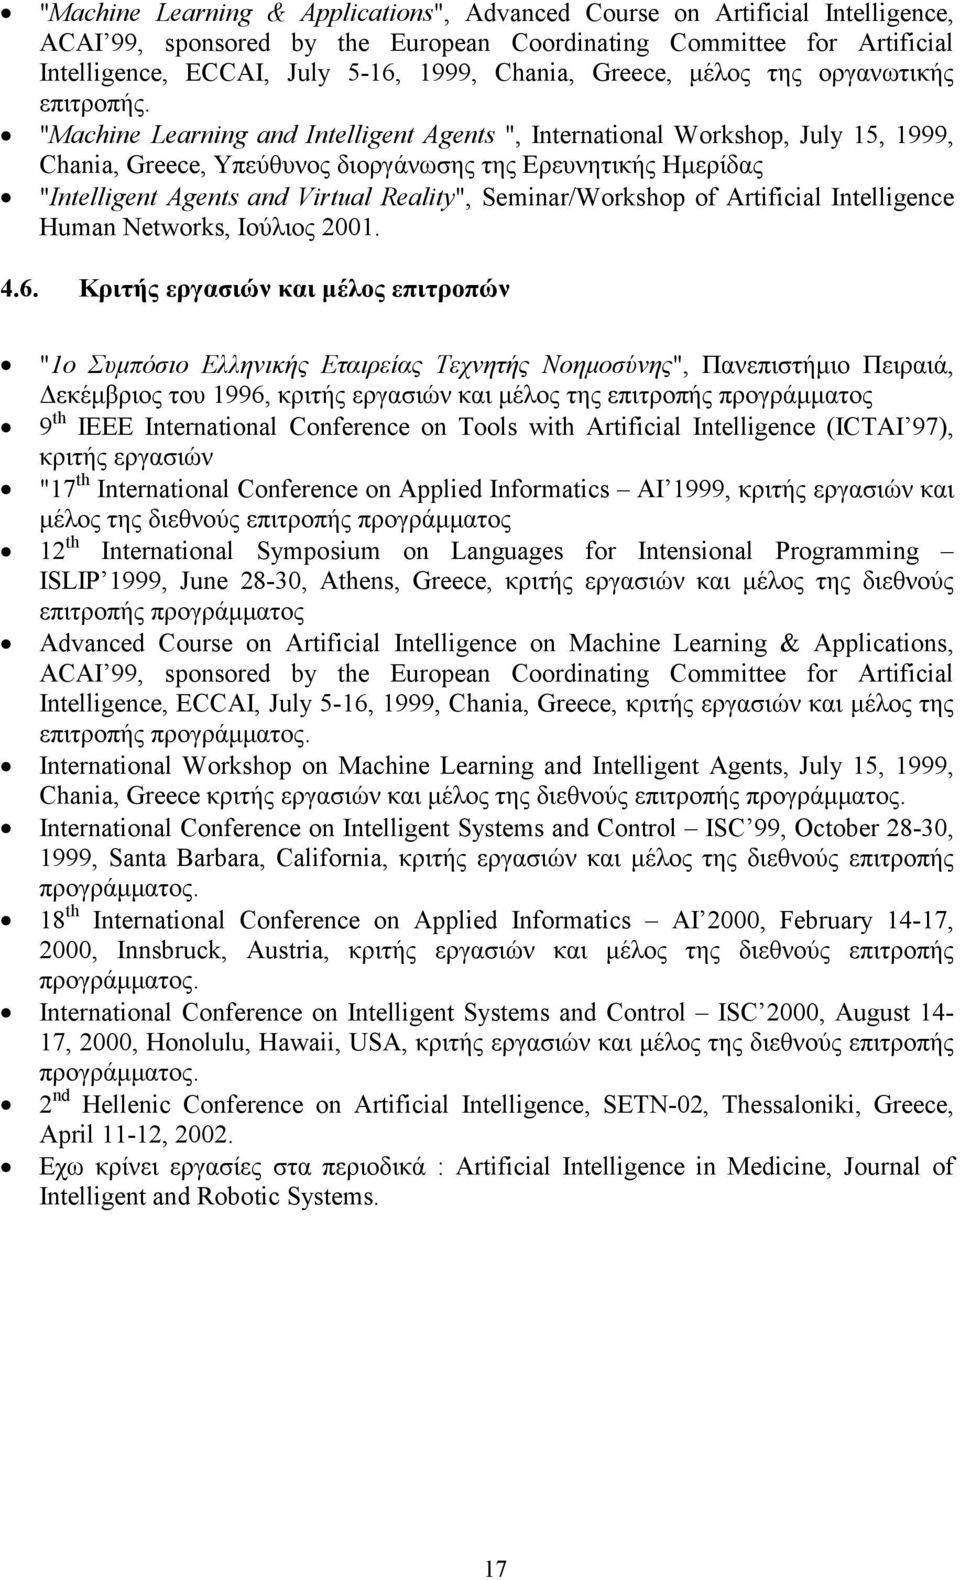 """Machine Learning and Intelligent Agents "", International Workshop, July 15, 1999, Chania, Greece, Υπεύθυνος διοργάνωσης της Ερευνητικής Ημερίδας ""Intelligent Agents and Virtual Reality"","